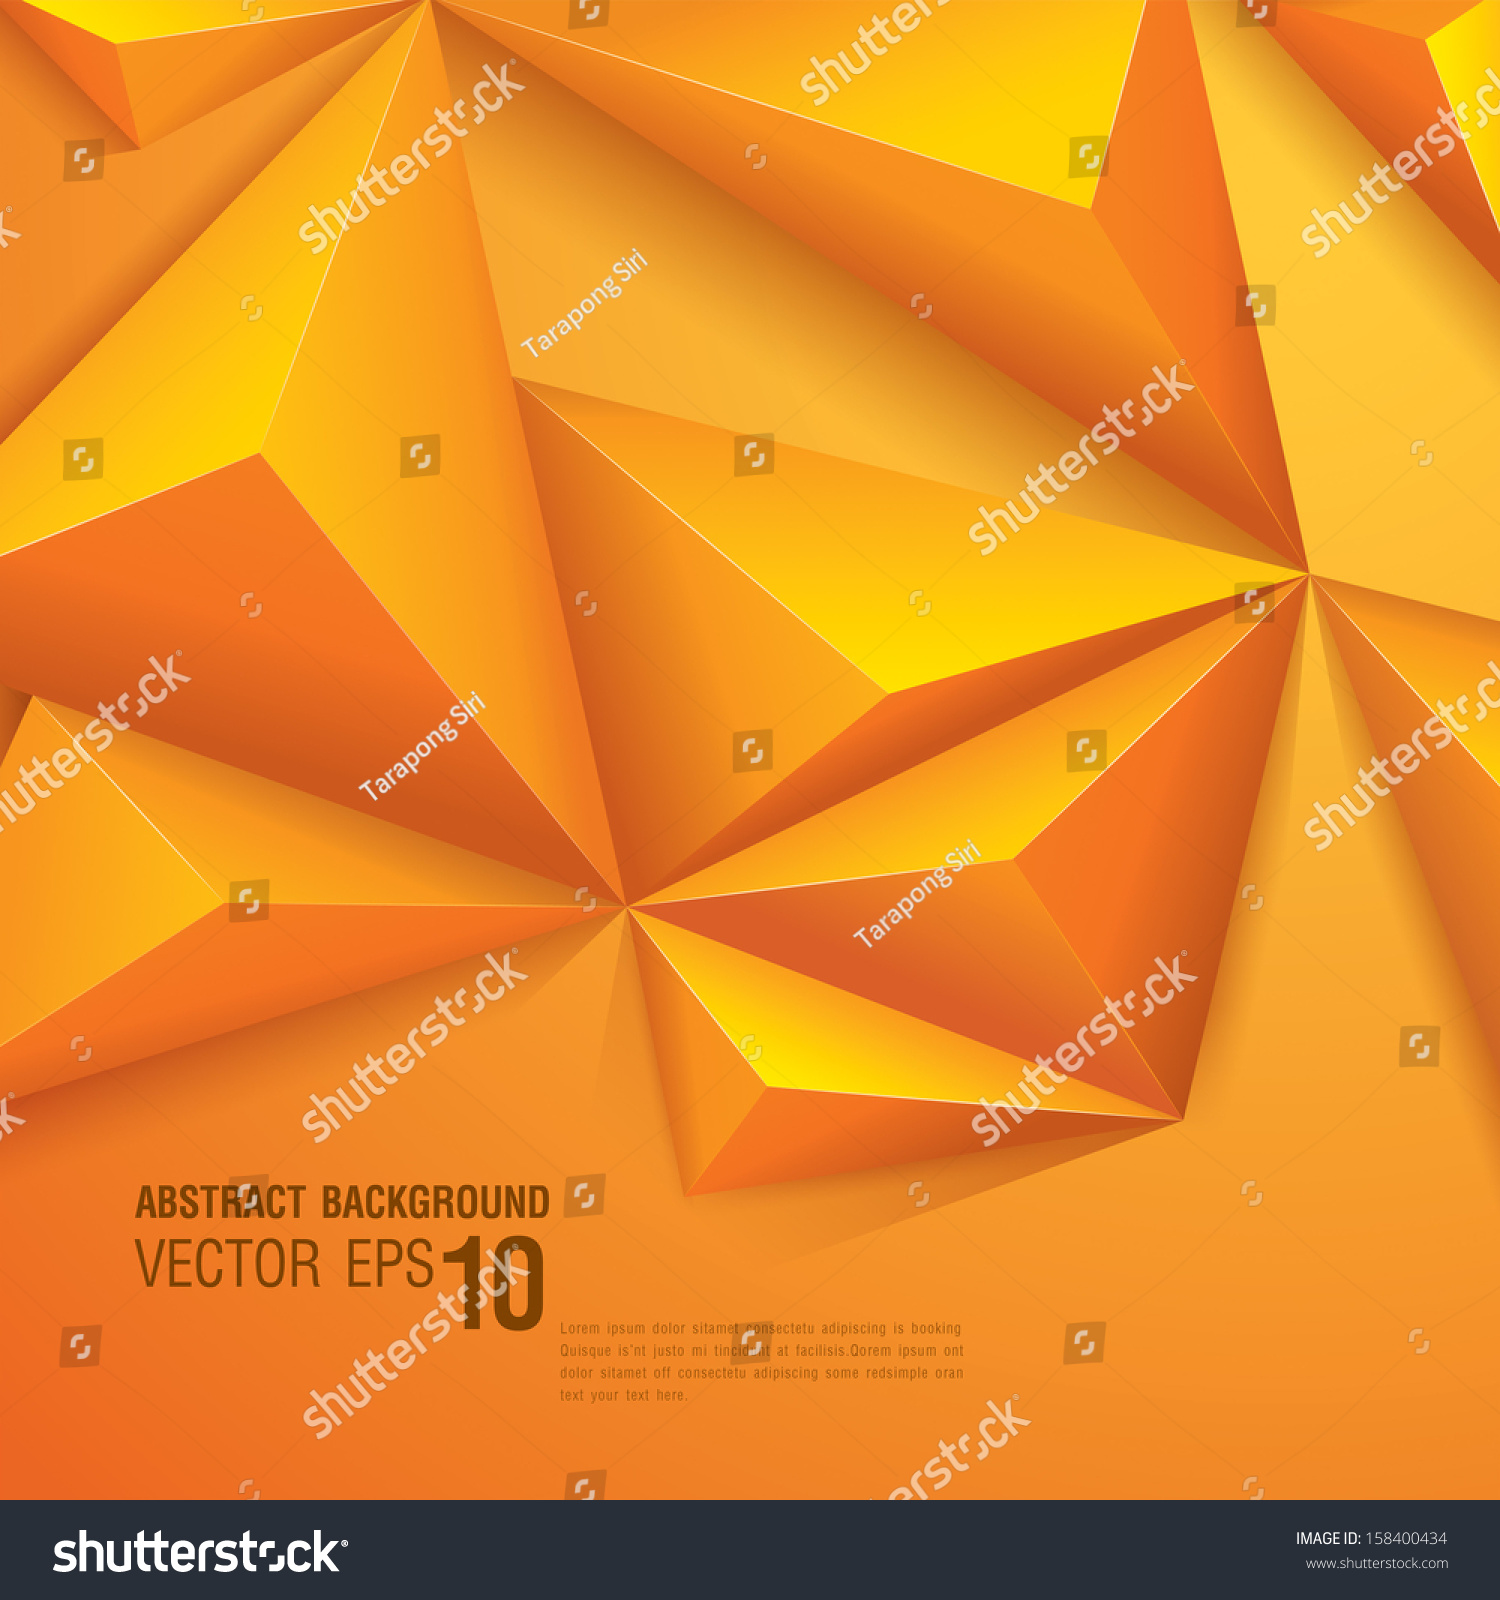 Abstract Book Cover Background ~ Abstract geometric vector background template for the